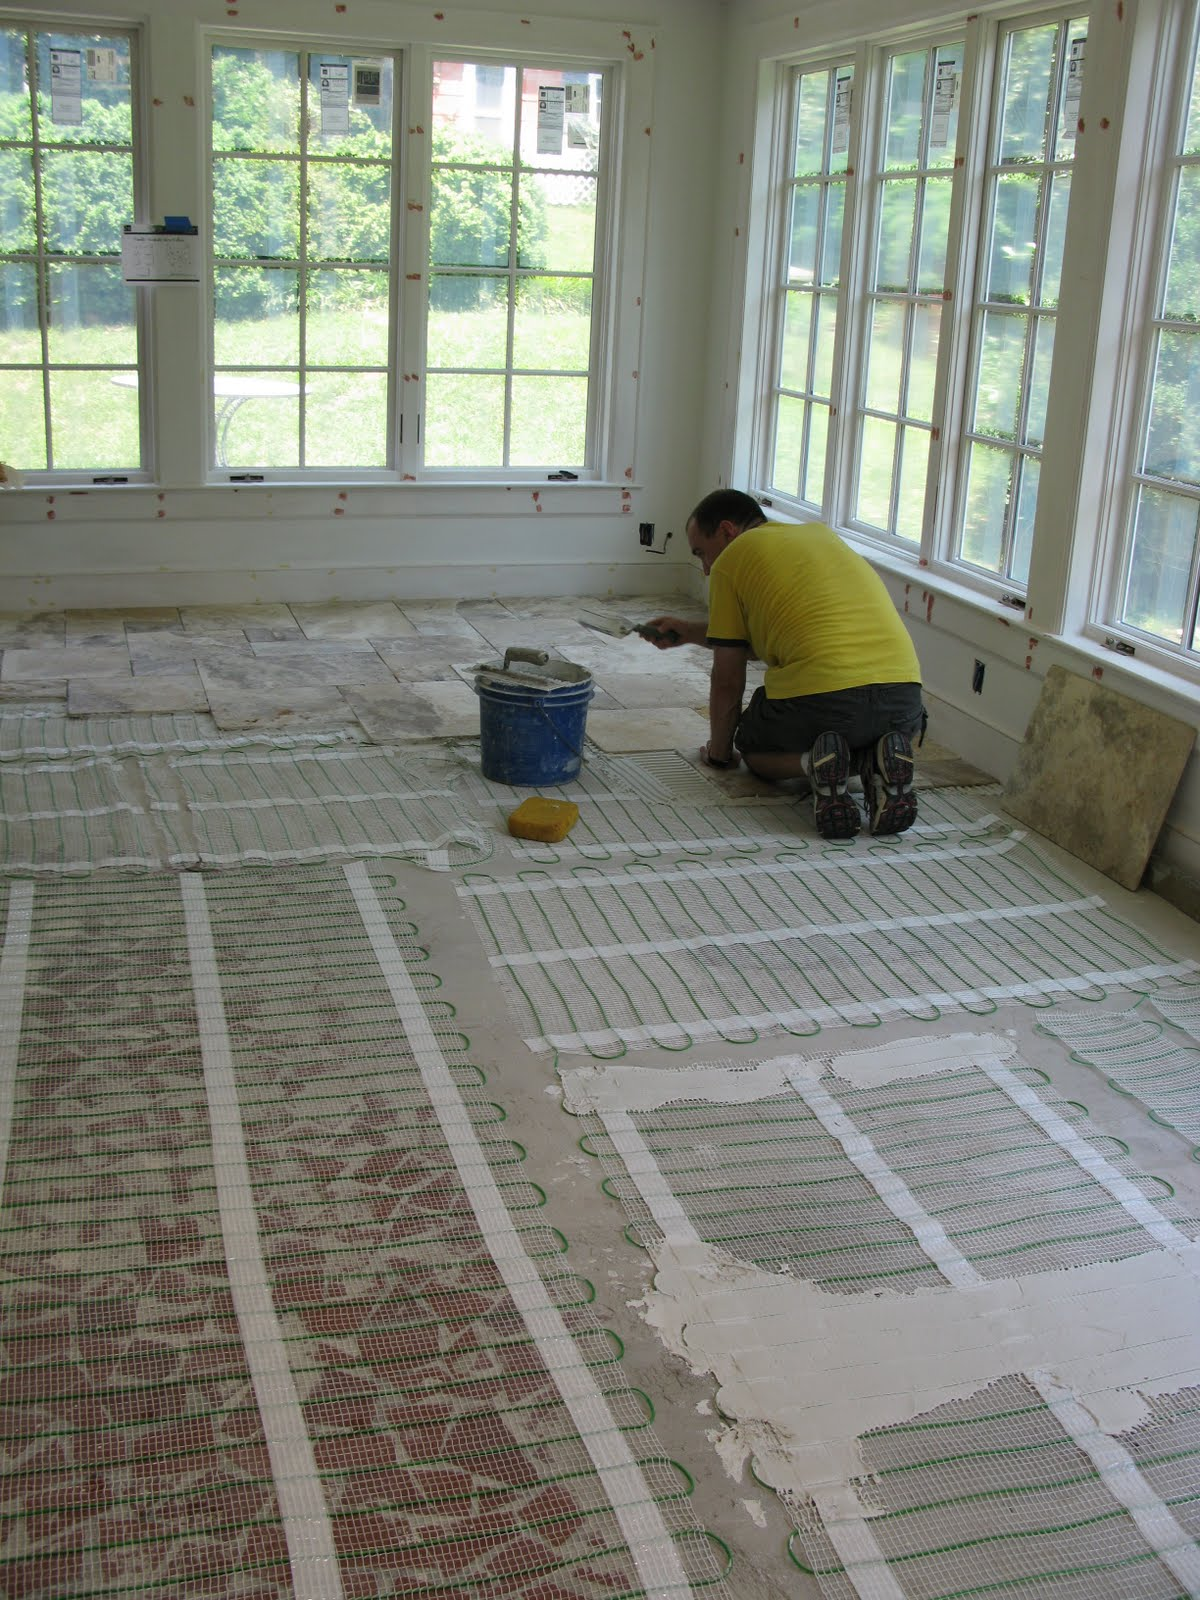 Jane S Home During Sunroom Floor